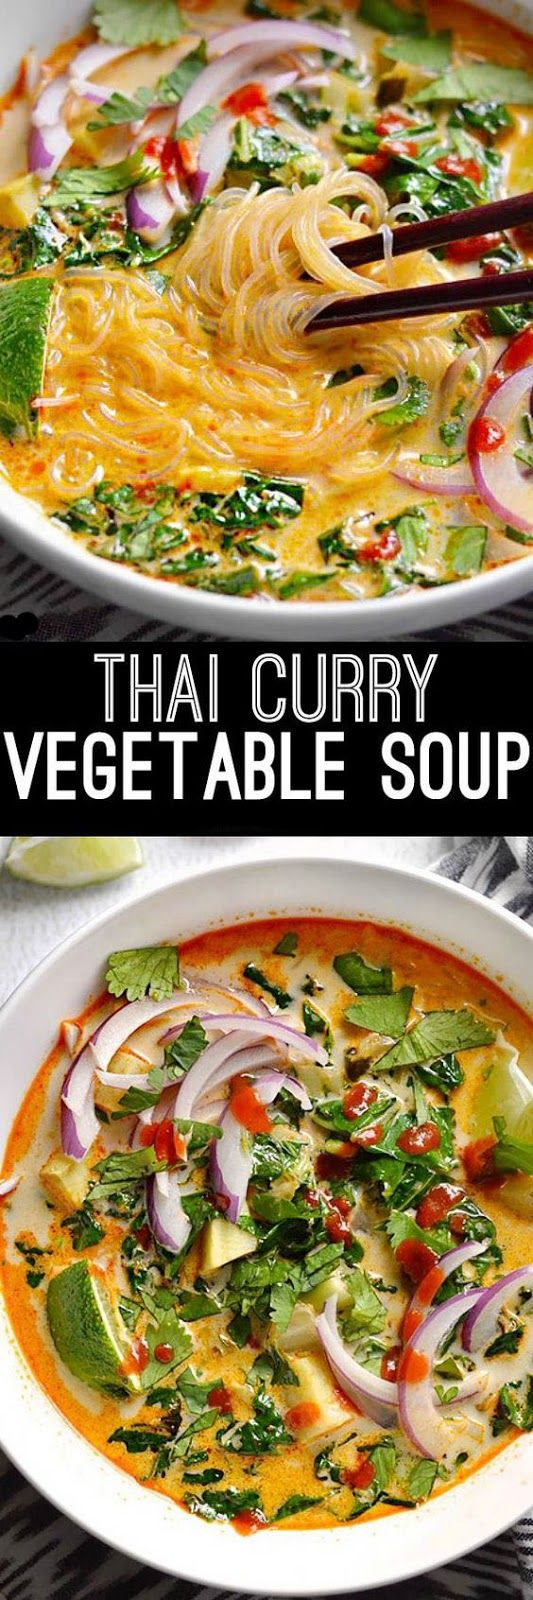 THAI CURRY VEGETABLE SOUP RECIPES